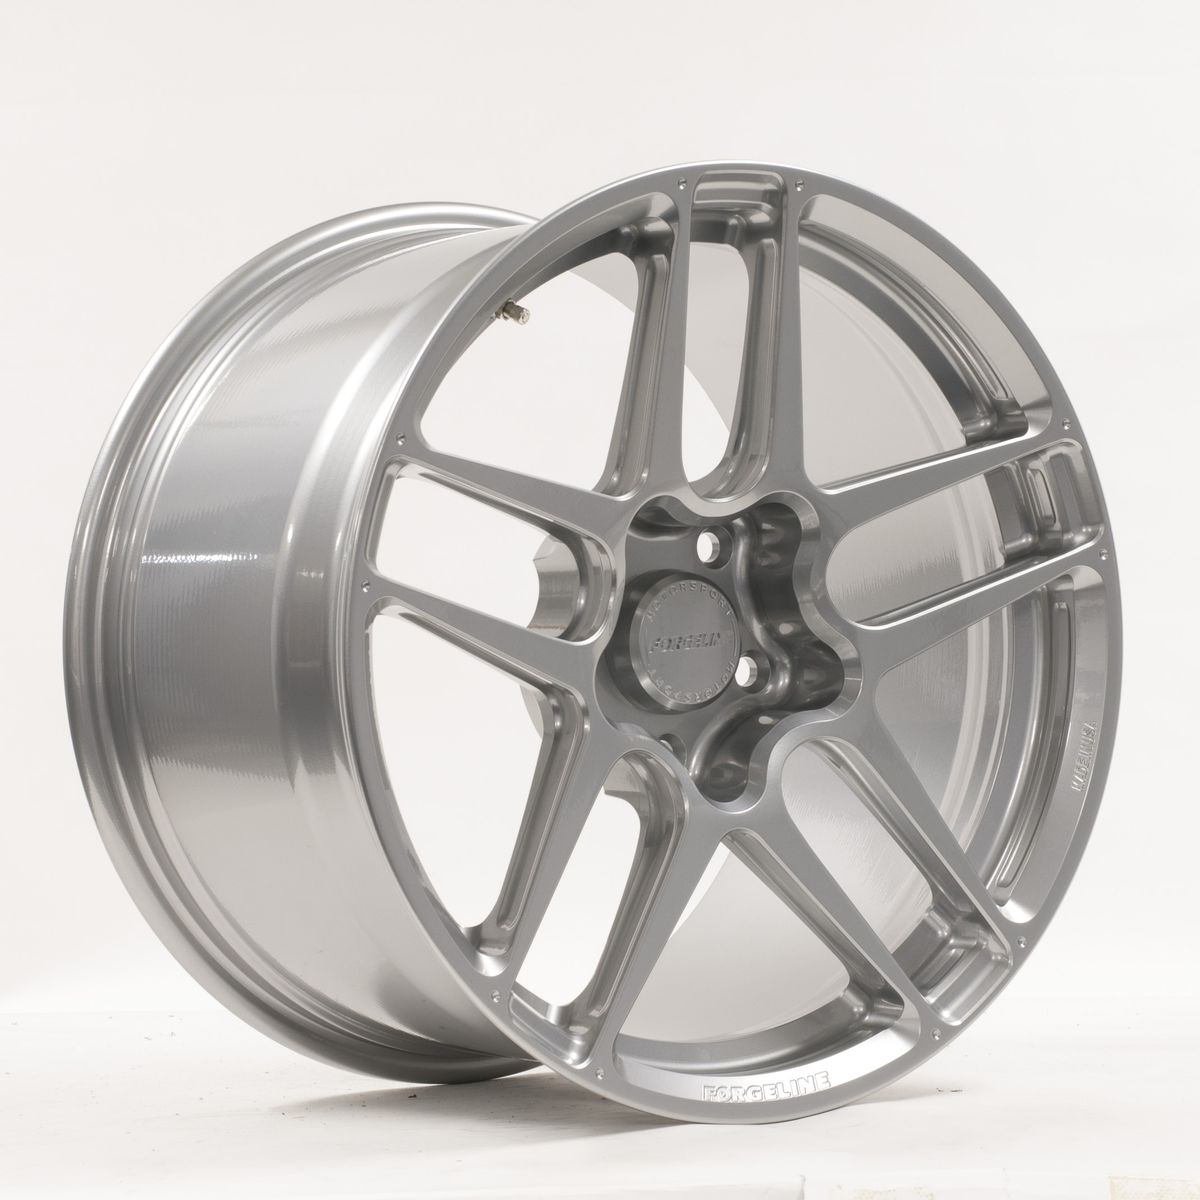 | Forgeline Debuts the New ZO1R Monoblock Racing Wheel at the 2018 PRI Show